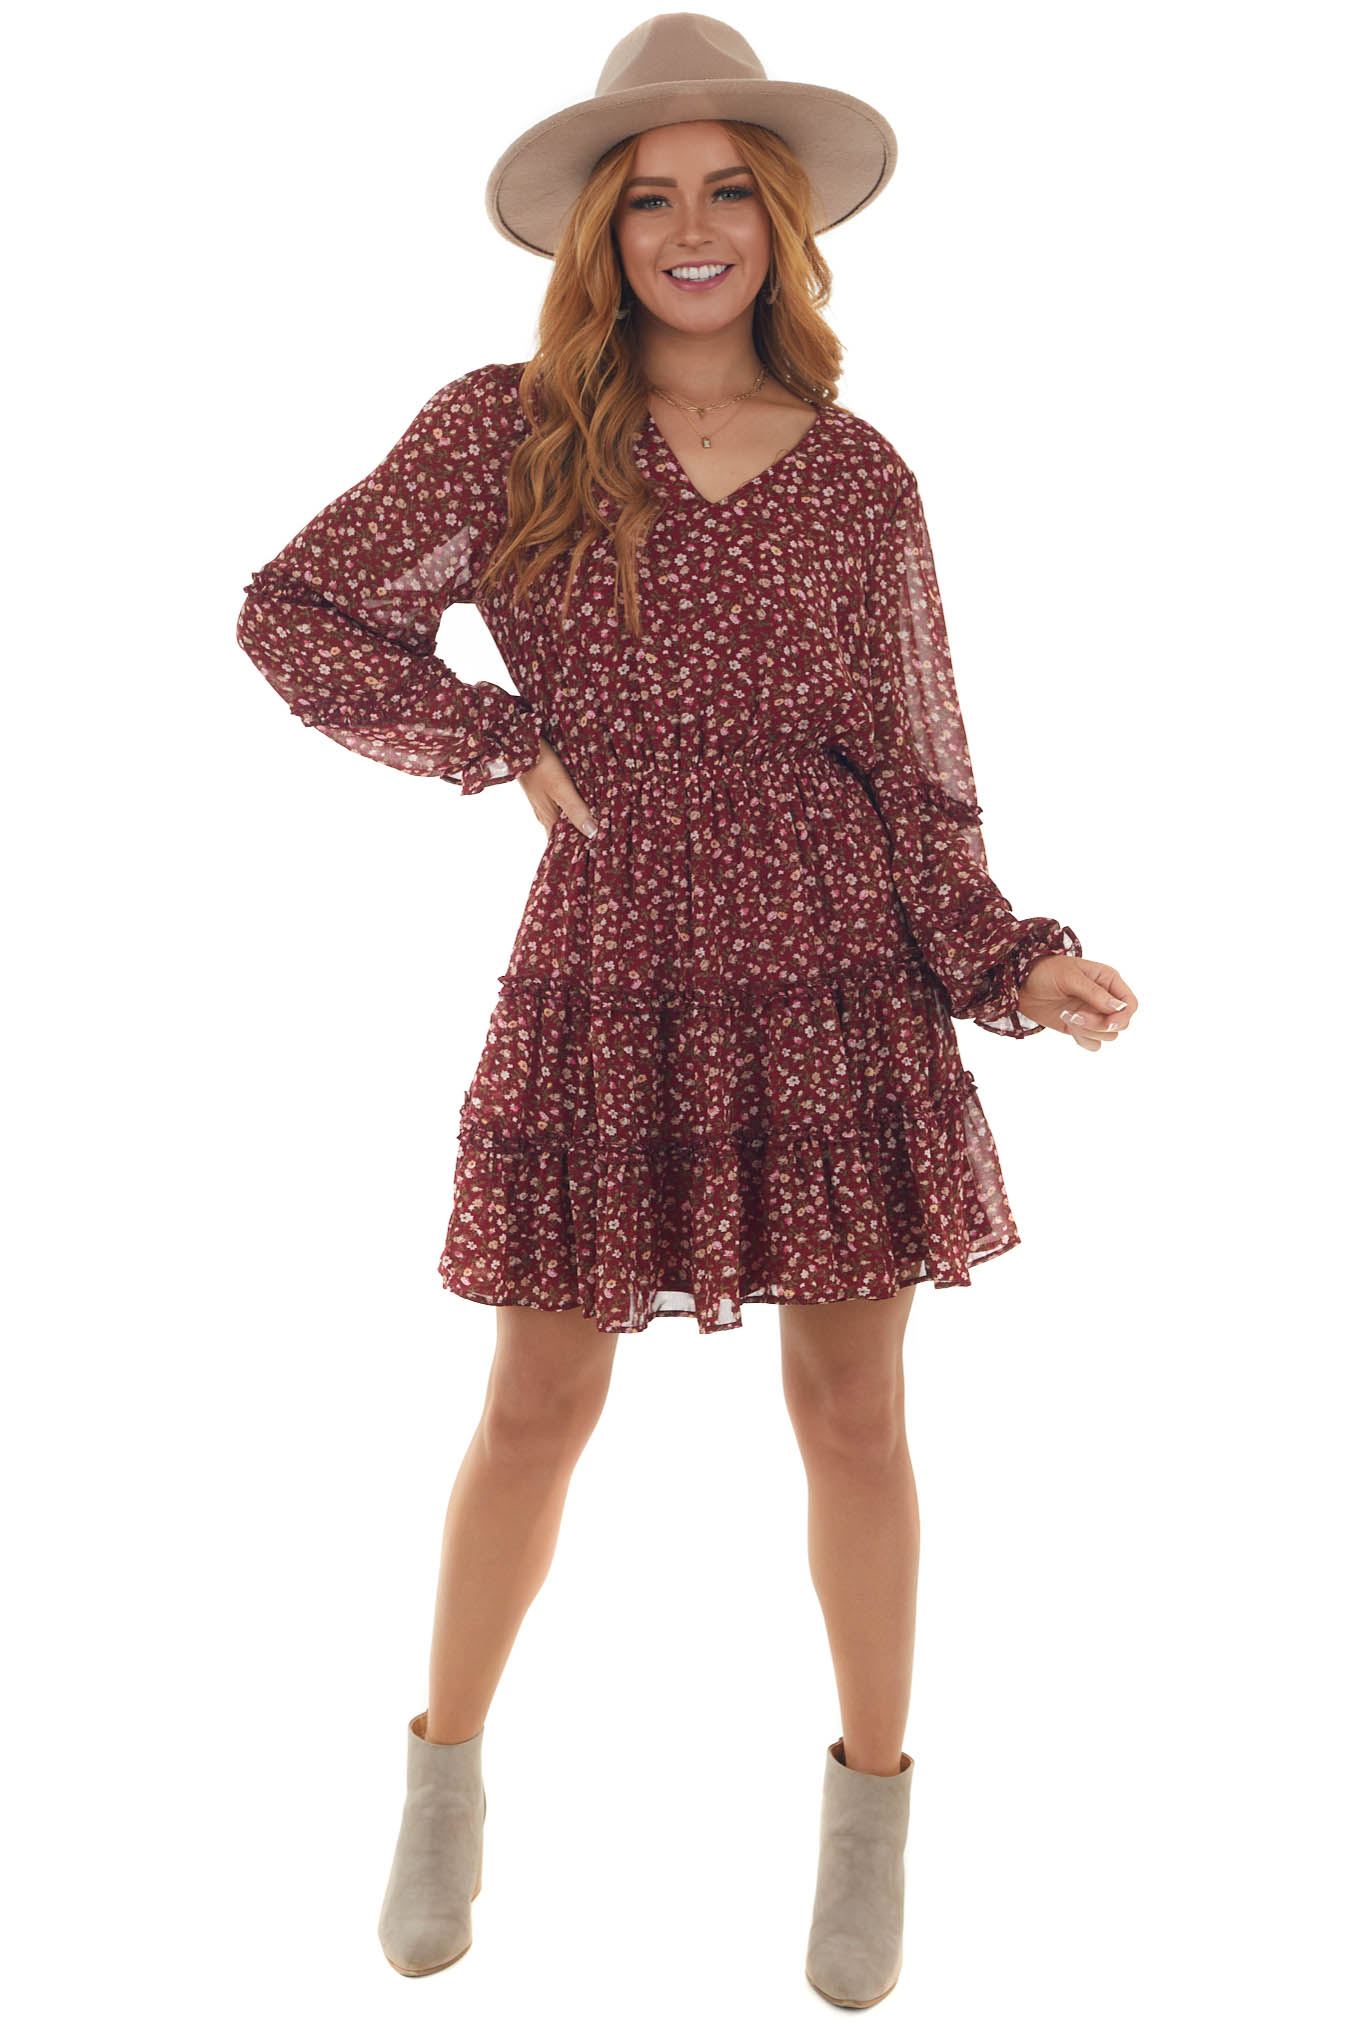 Rosewood Floral Print Tiered Short Dress